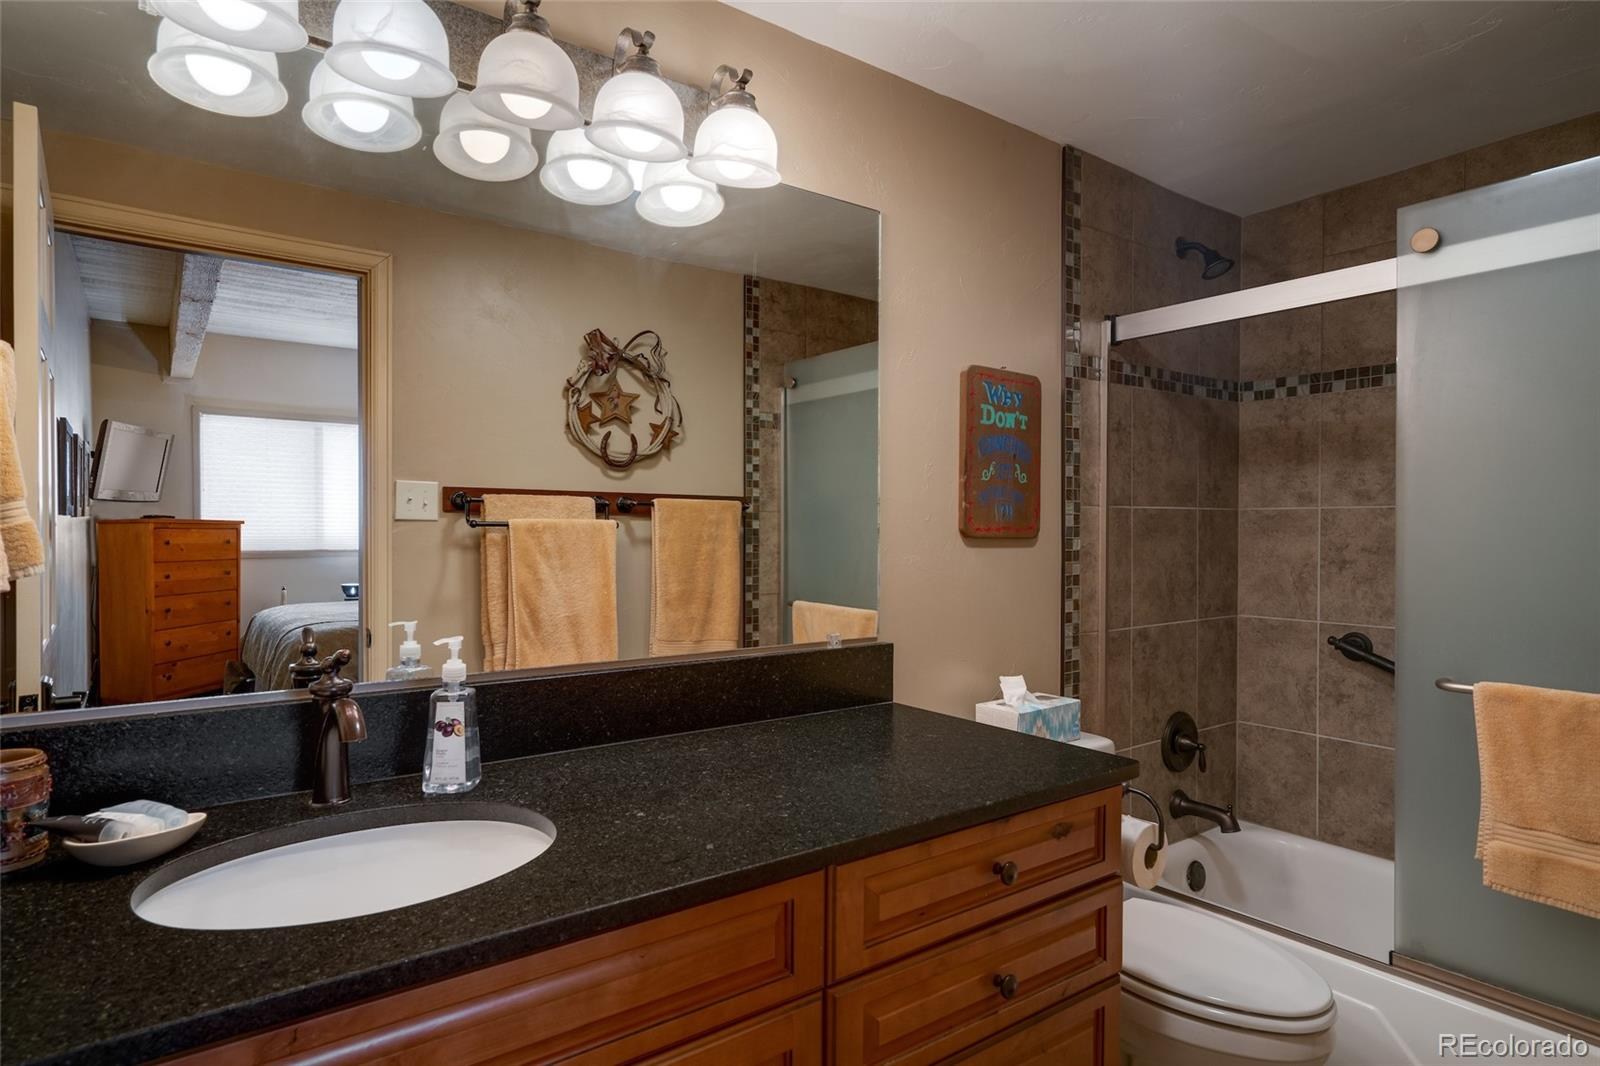 MLS# 8046163 - 18 - 2355 Storm Meadows Dr 311  #A-311, Steamboat Springs, CO 80487